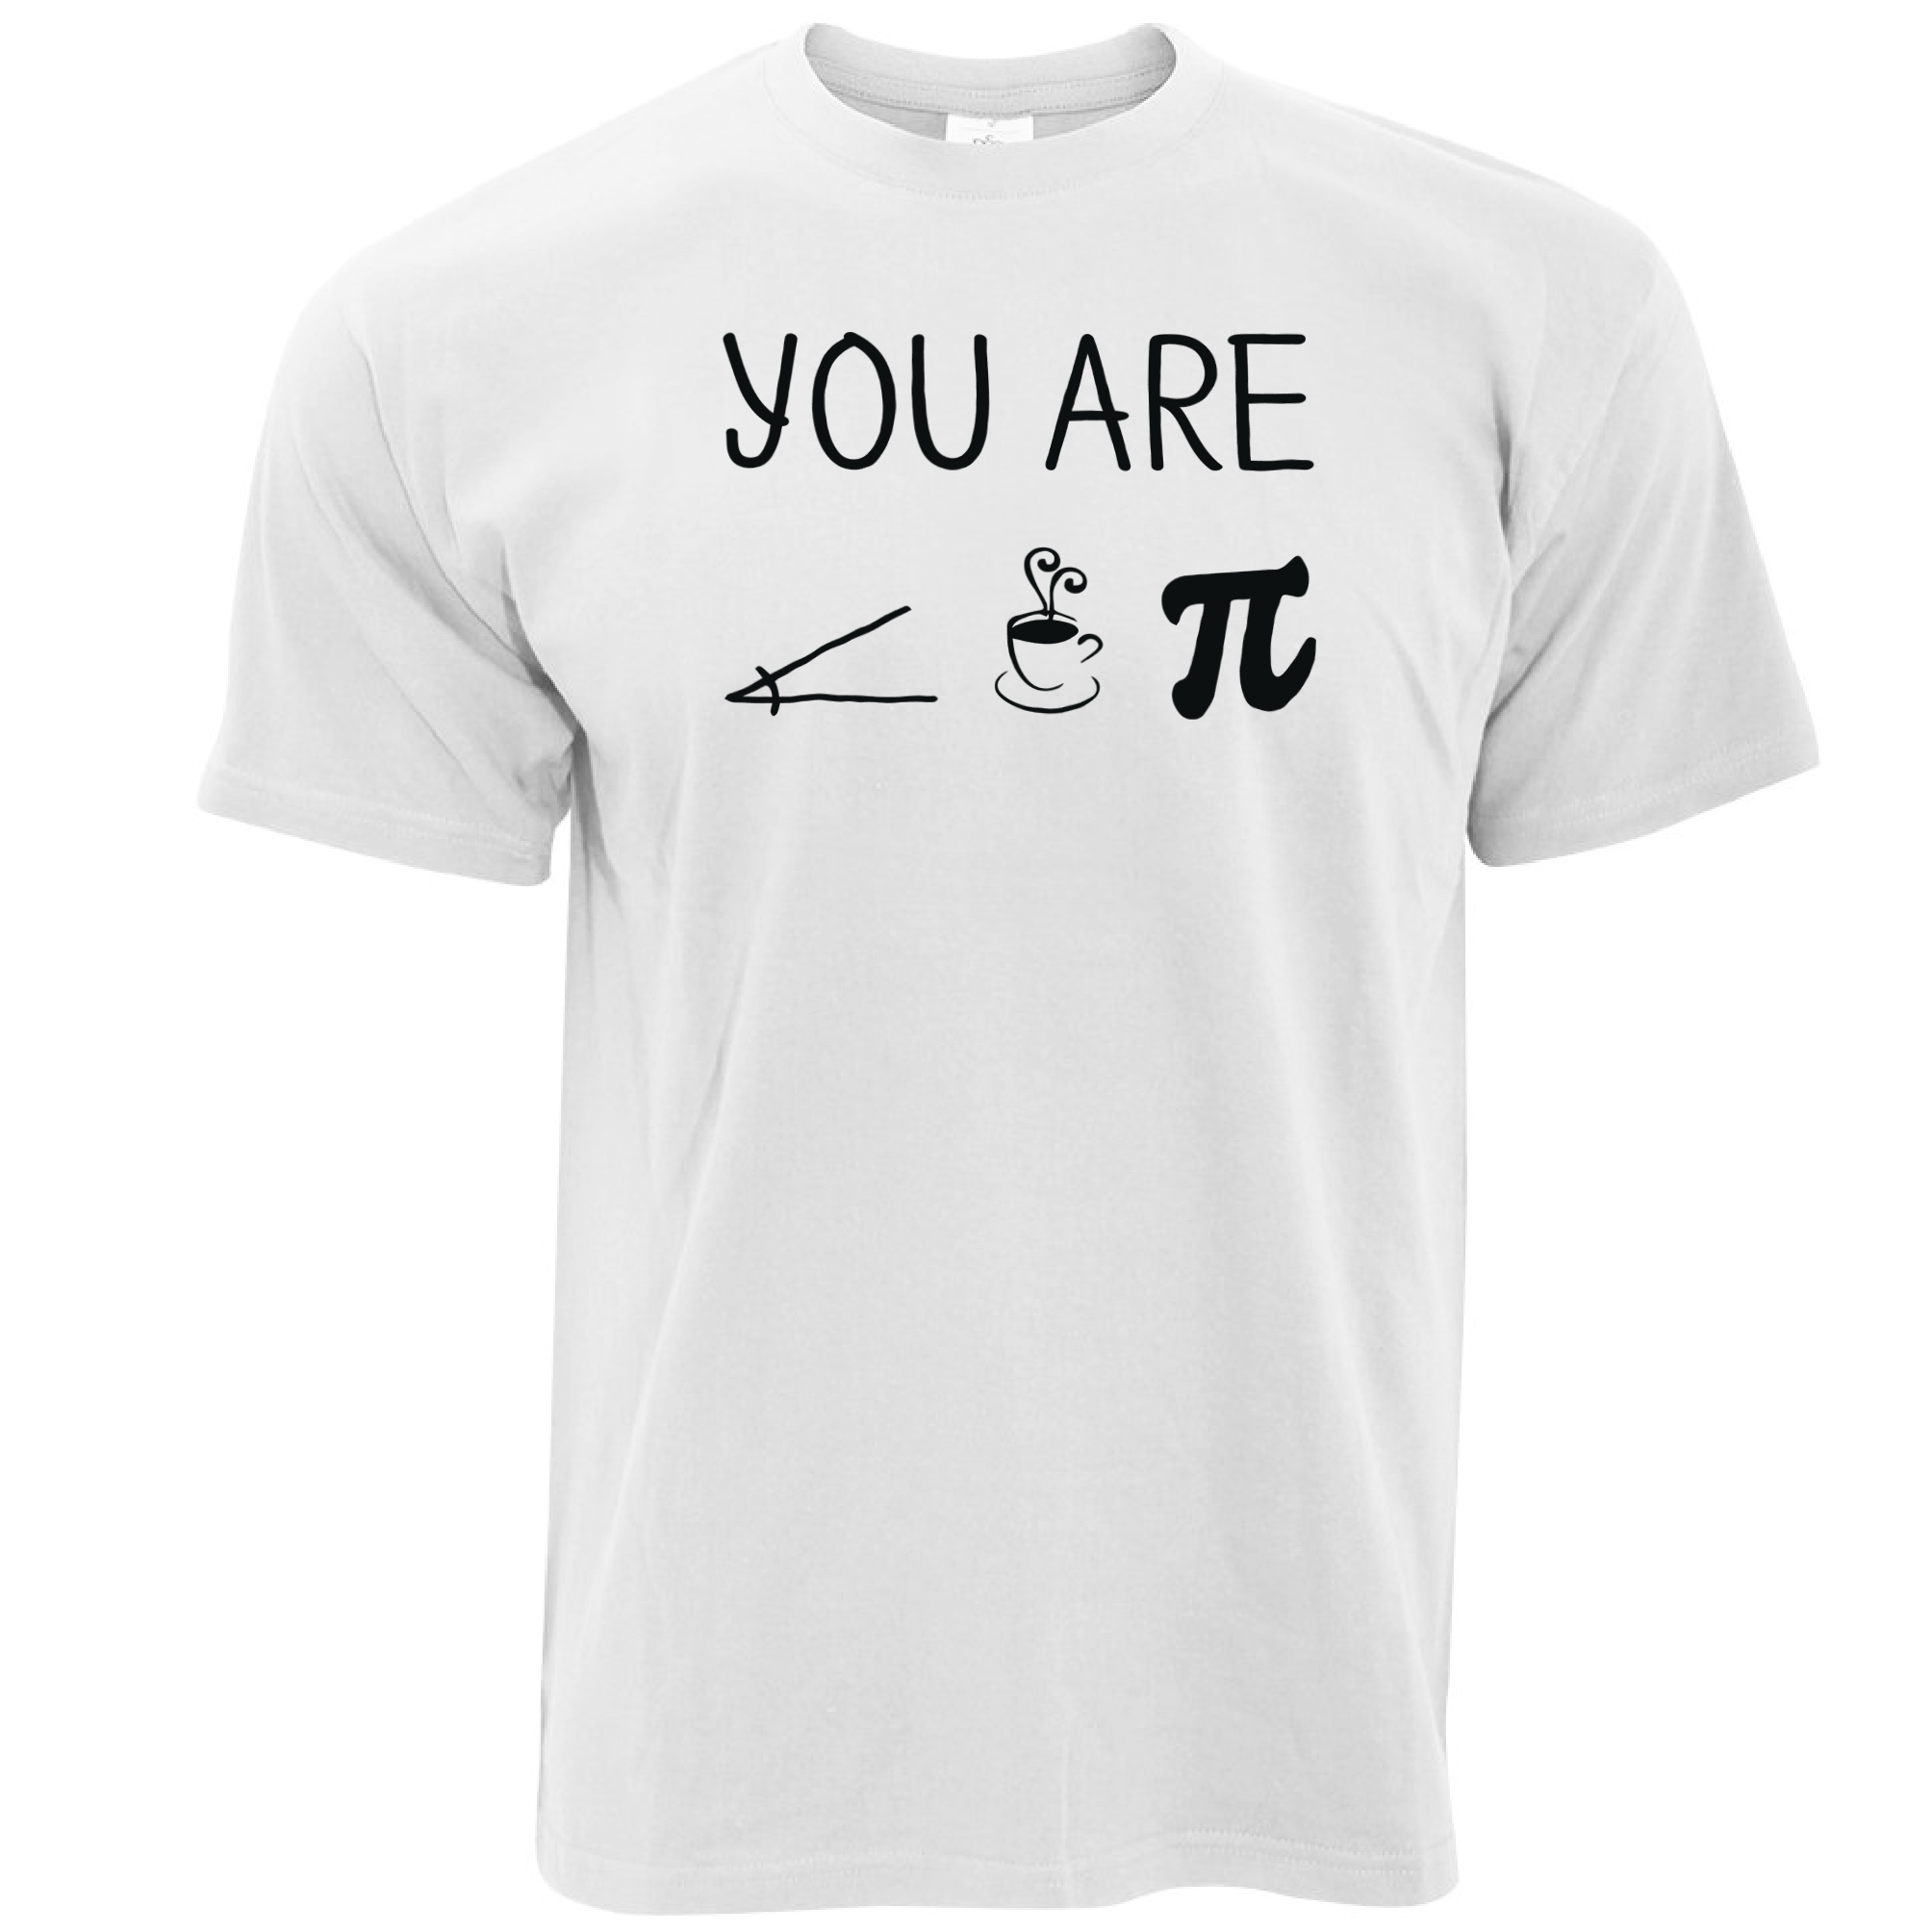 Xmas t shirt design - Gildan Brand T Shirts Men S Funny You Are Cutie Pie Science Maths School Present Gift Christmas Design T Shirt Cool Summer Tops